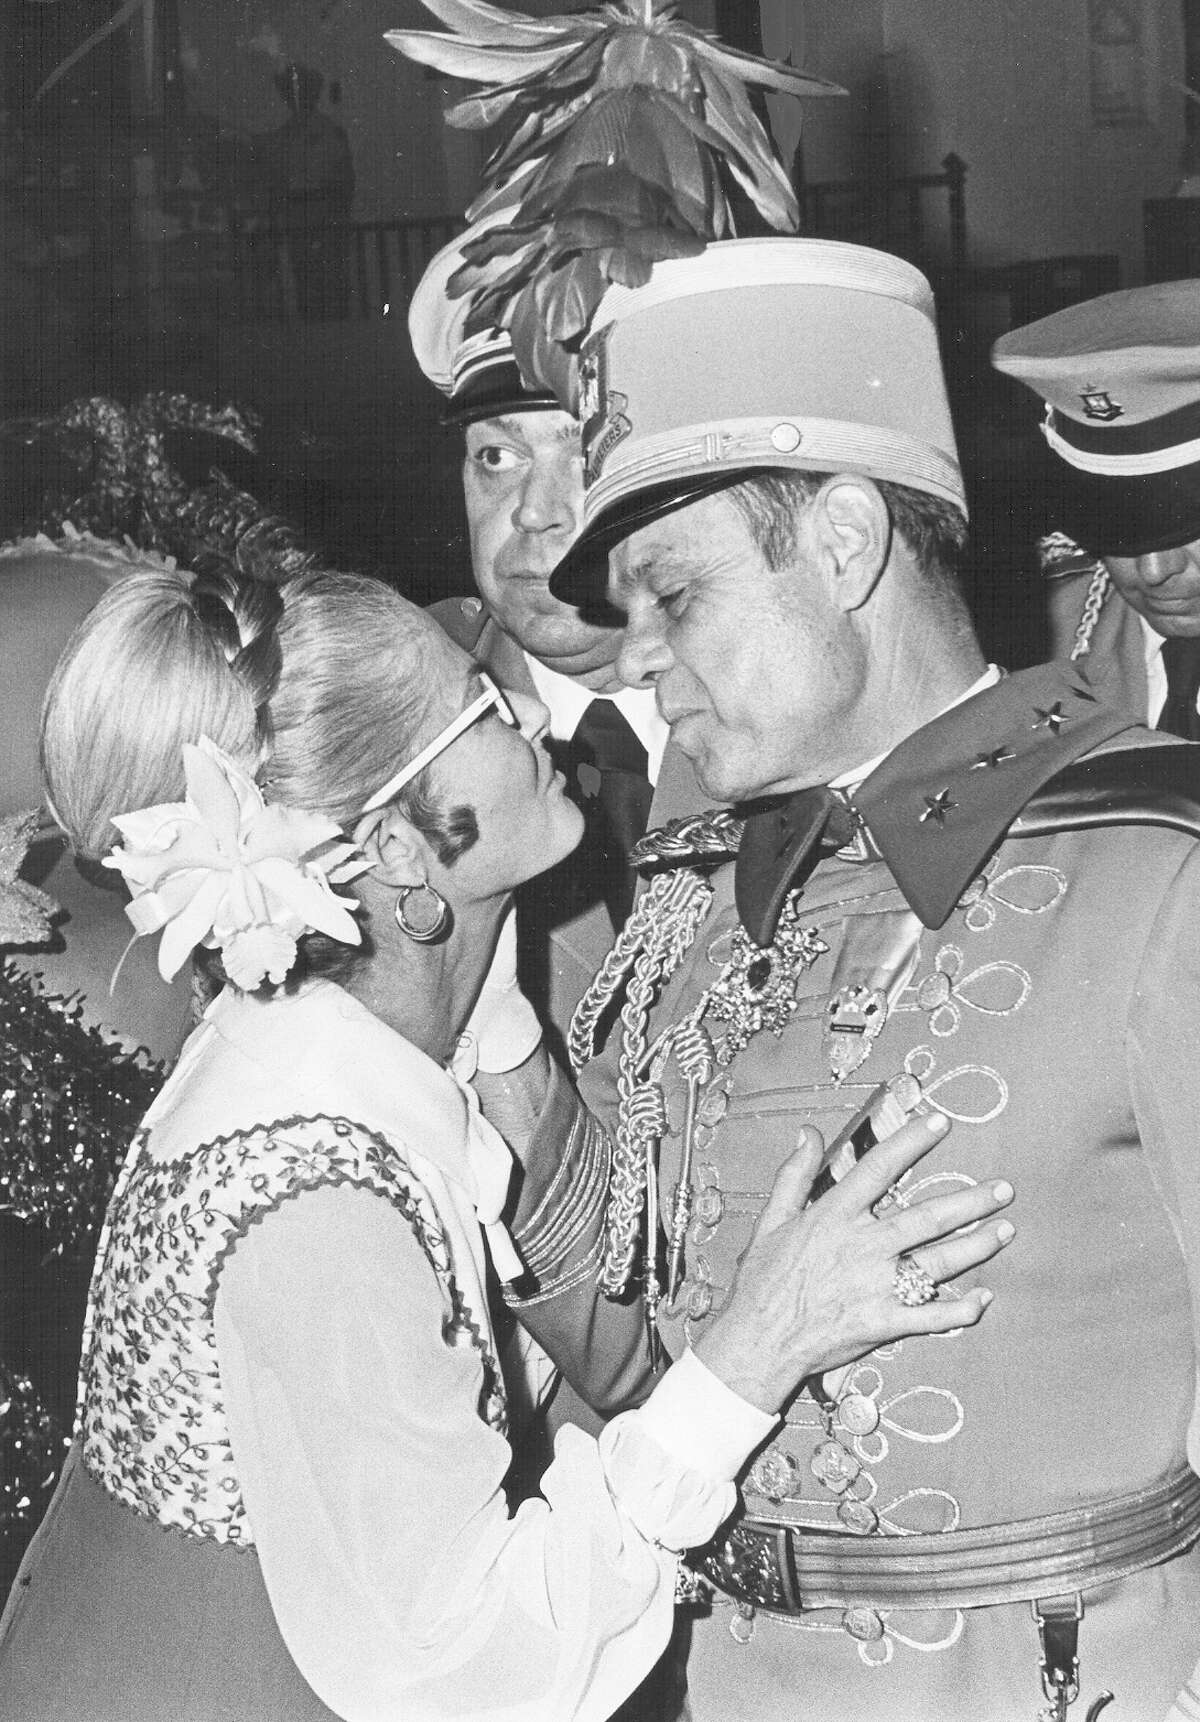 3. Fiesta royalty solidified medals as a staple of the celebration In 1971, King Antonio XLIX Charles G. Orsinger distributed what is considered to be the first official Fiesta medal.